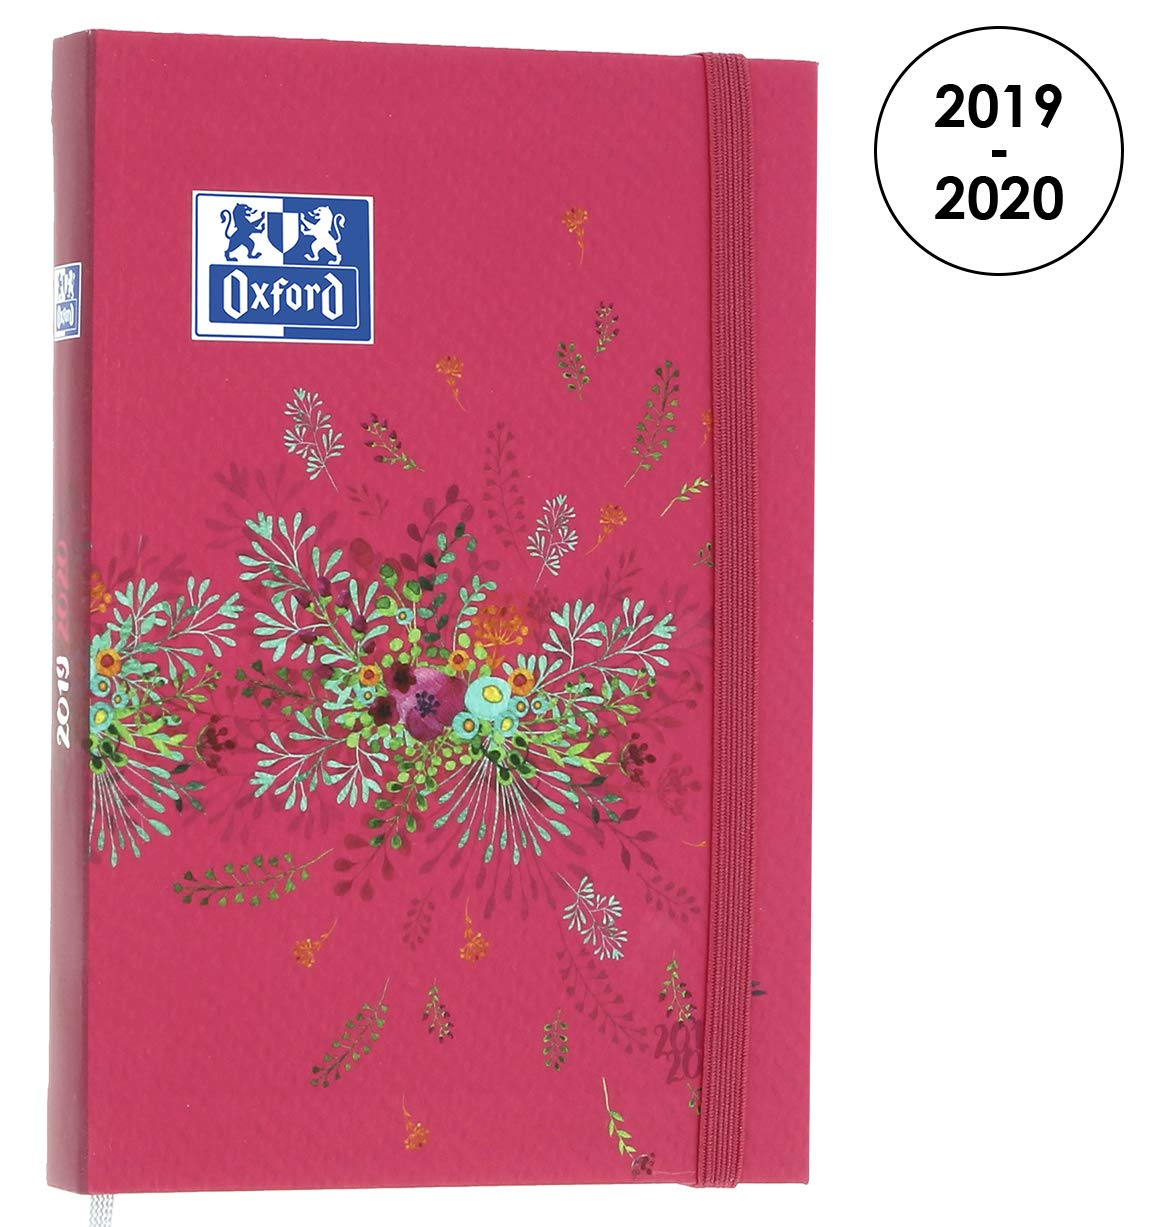 OXFORD 100738359 Flowers Agenda Scolaire journalier 2019-2020 1 Jour par Page 352 pages 12x18 Floral